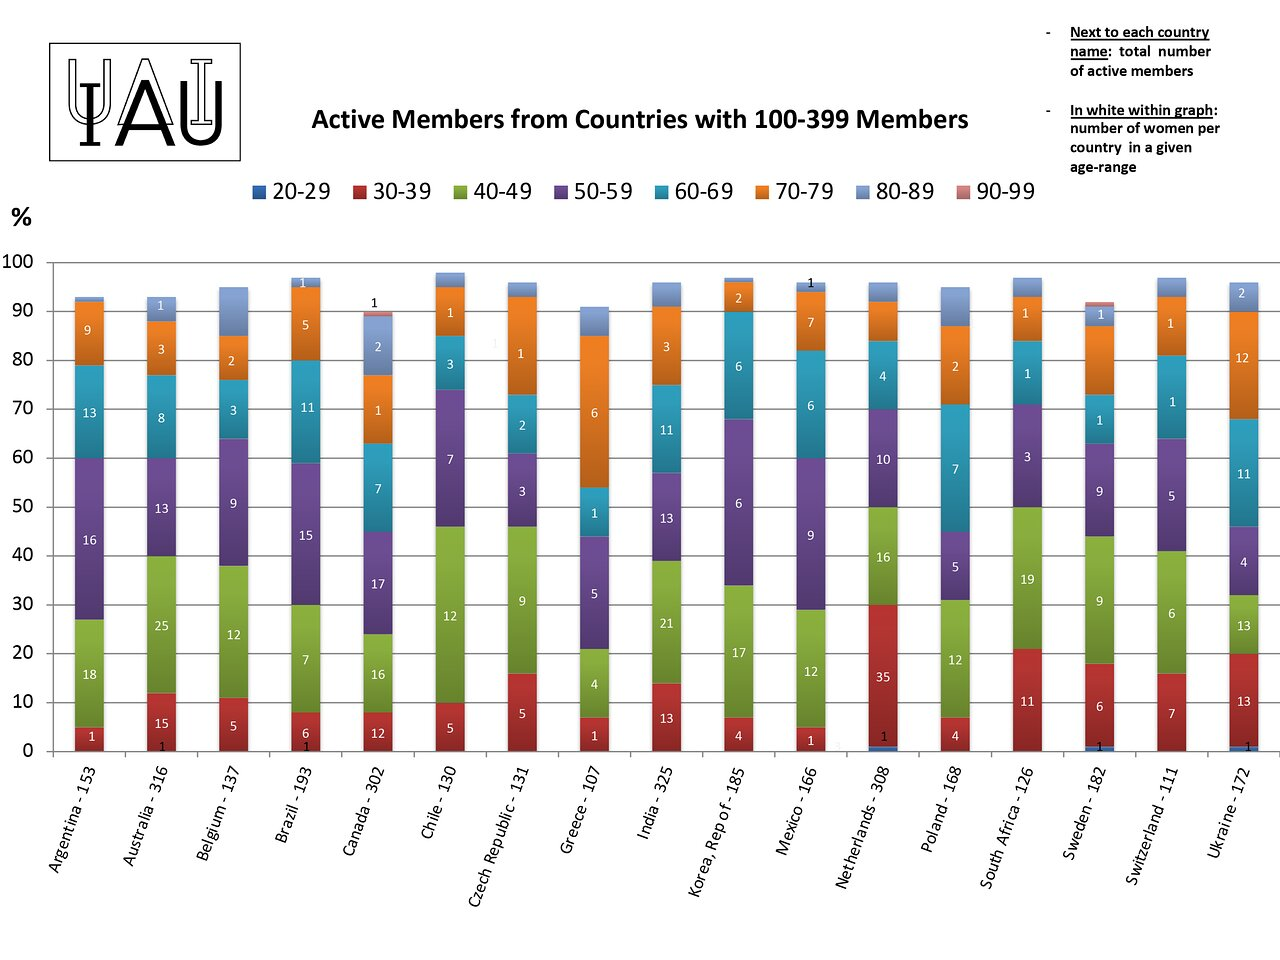 Active members from countries with 100 to 399 members